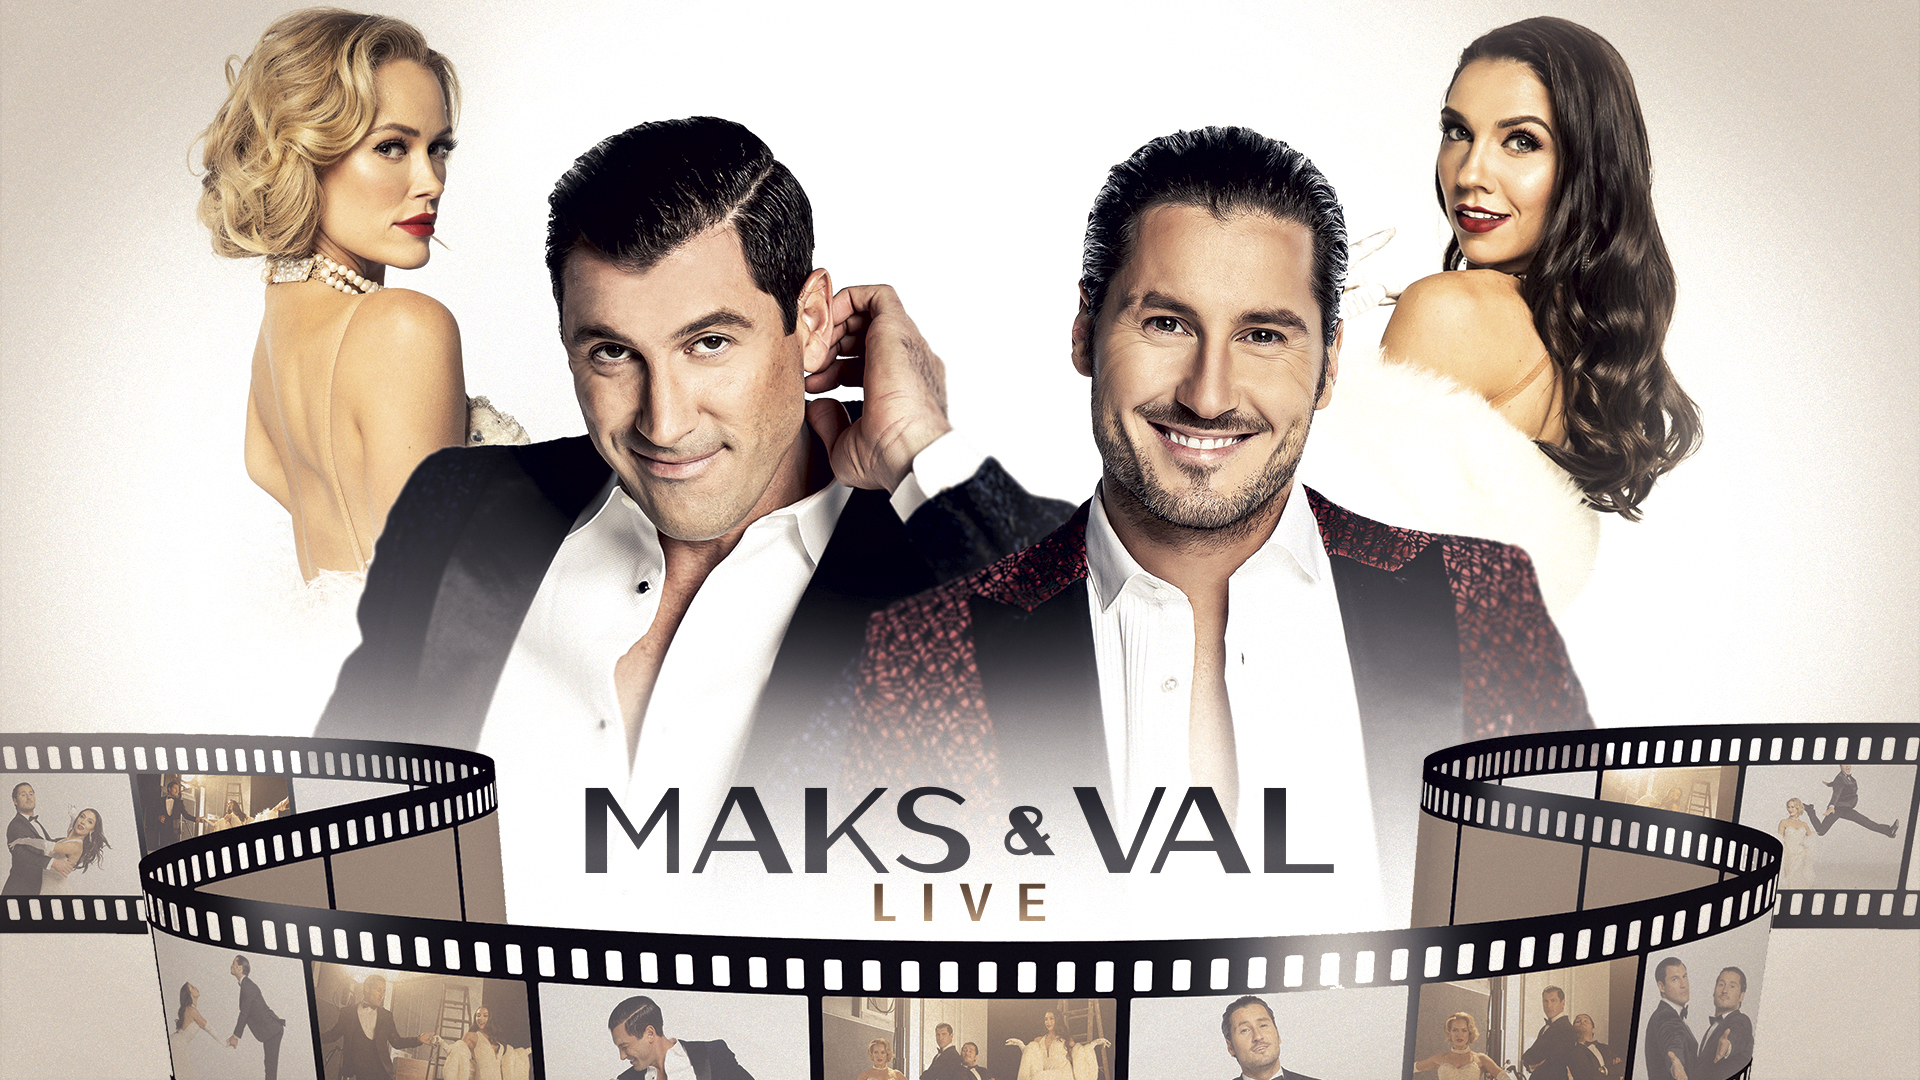 Maks and Val Live Featuring Peta & Jenna